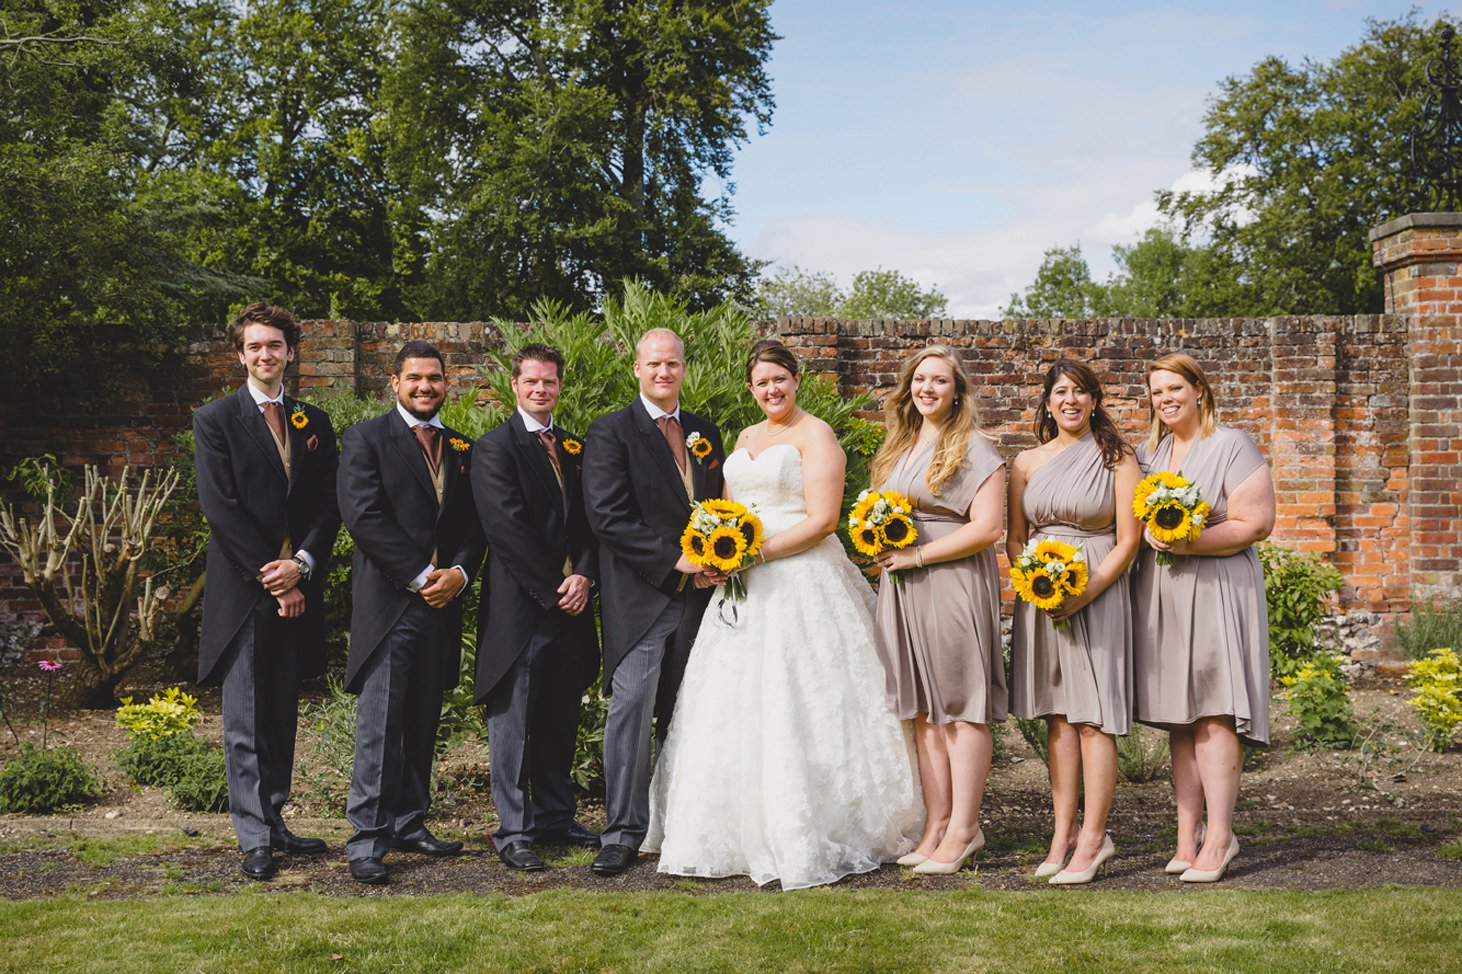 Wycombe Abbey wedding photography bridal party portrait